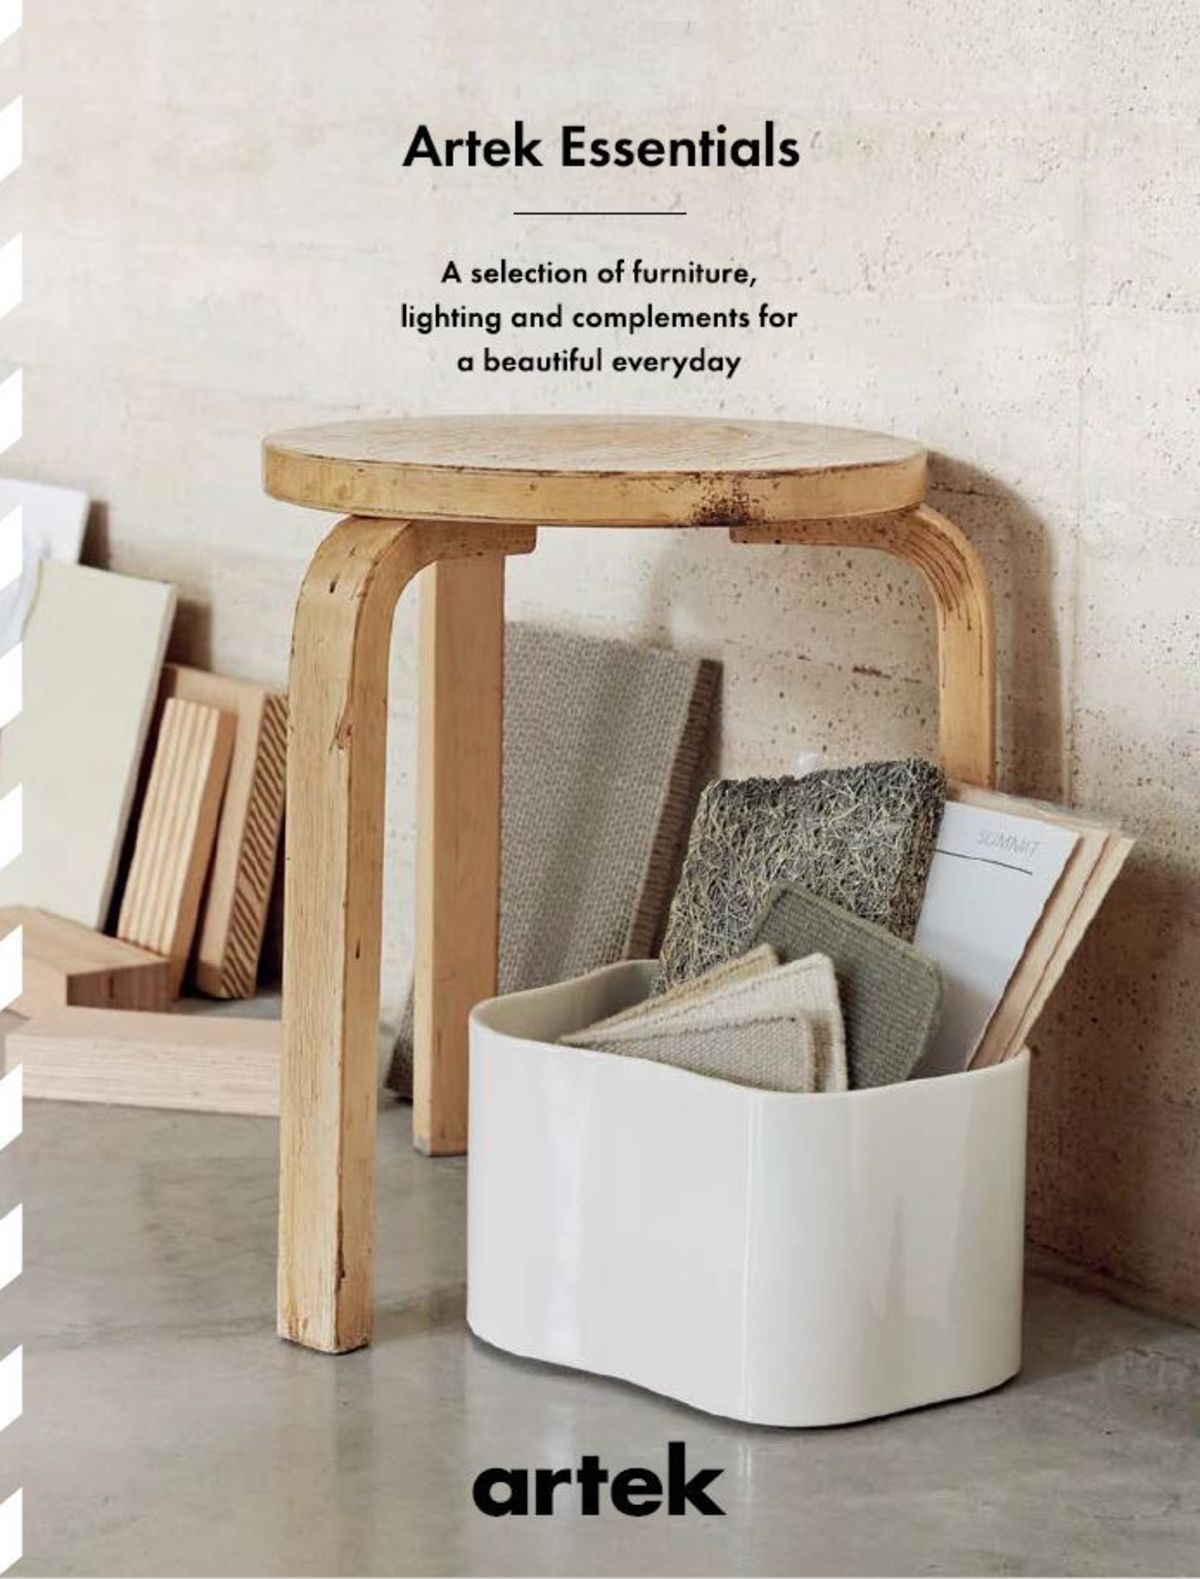 Artek_Essentials_Catalogue_2020